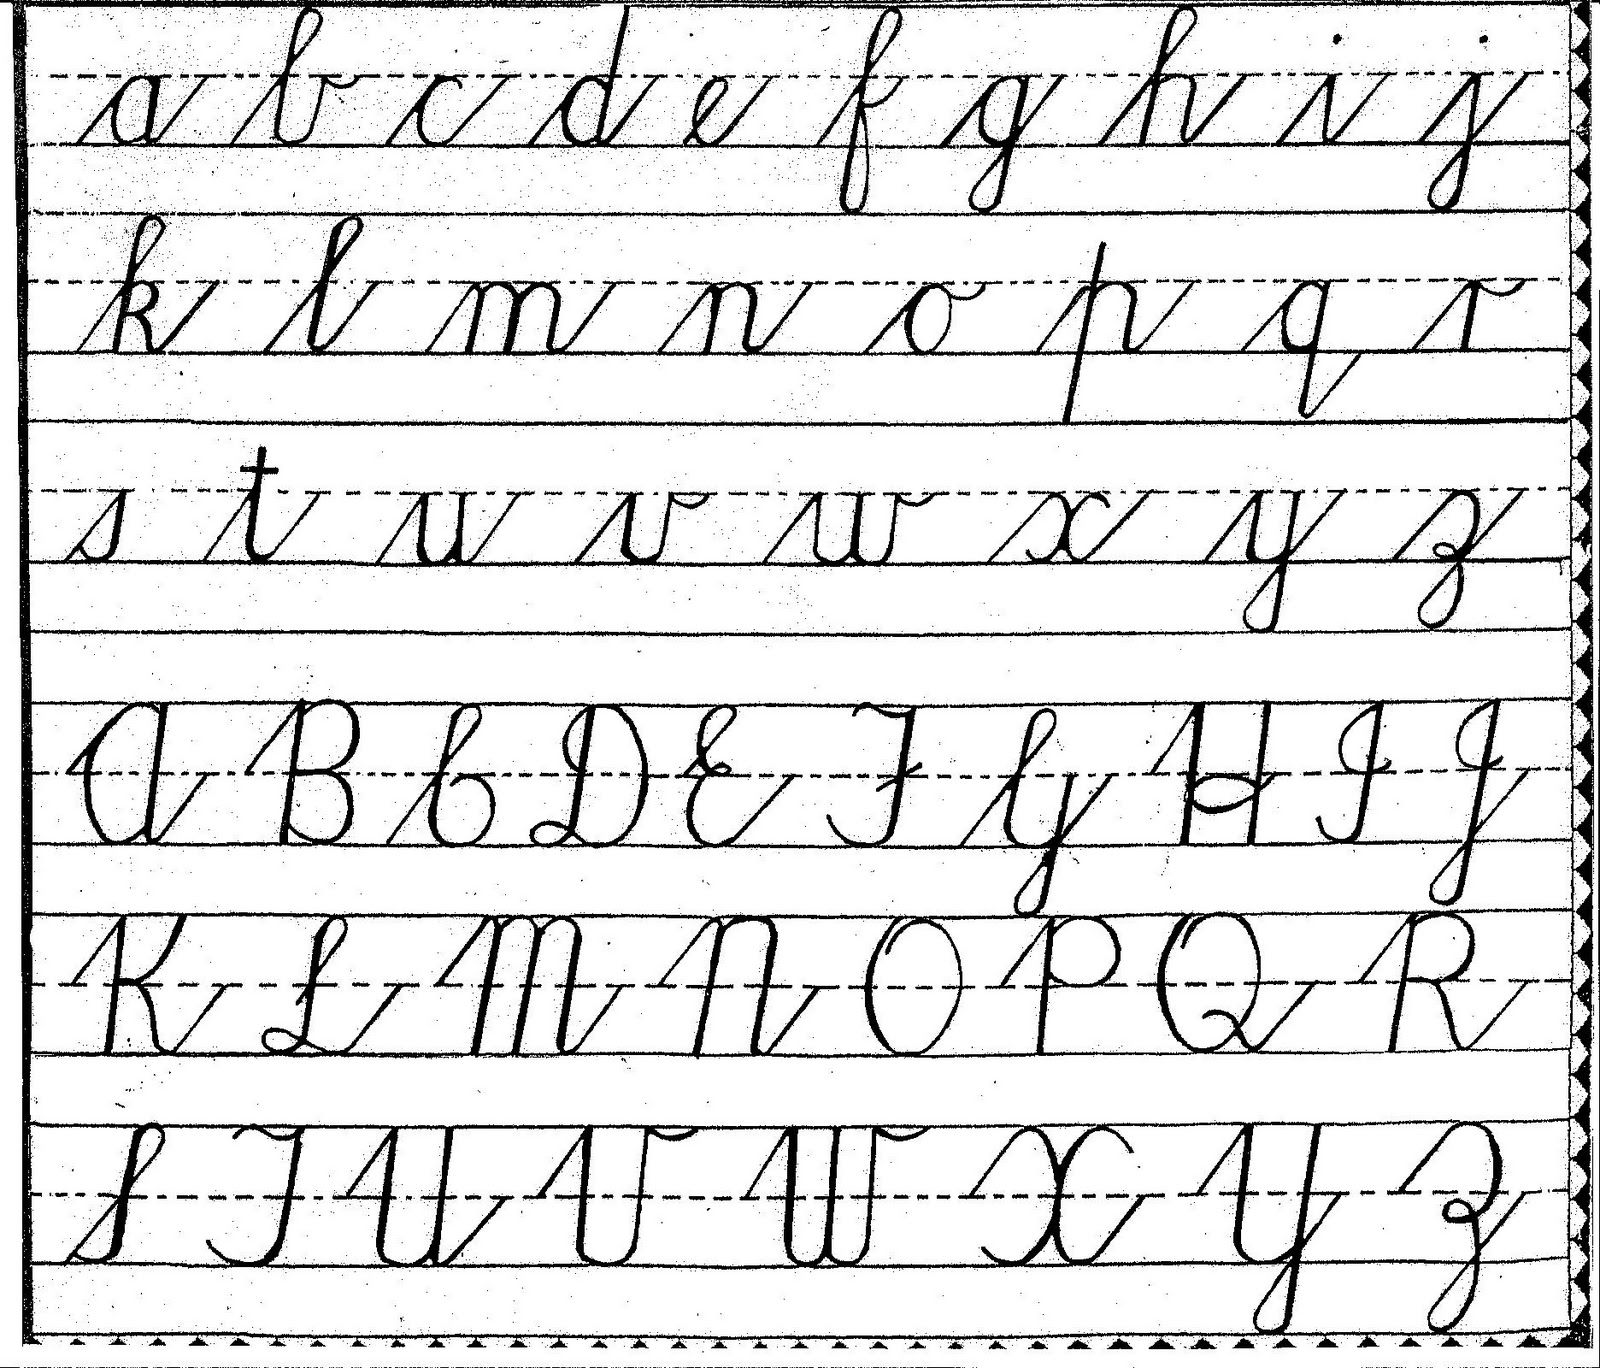 worksheet Practice Cursive Writing collection of free cursive handwriting from all over the world world